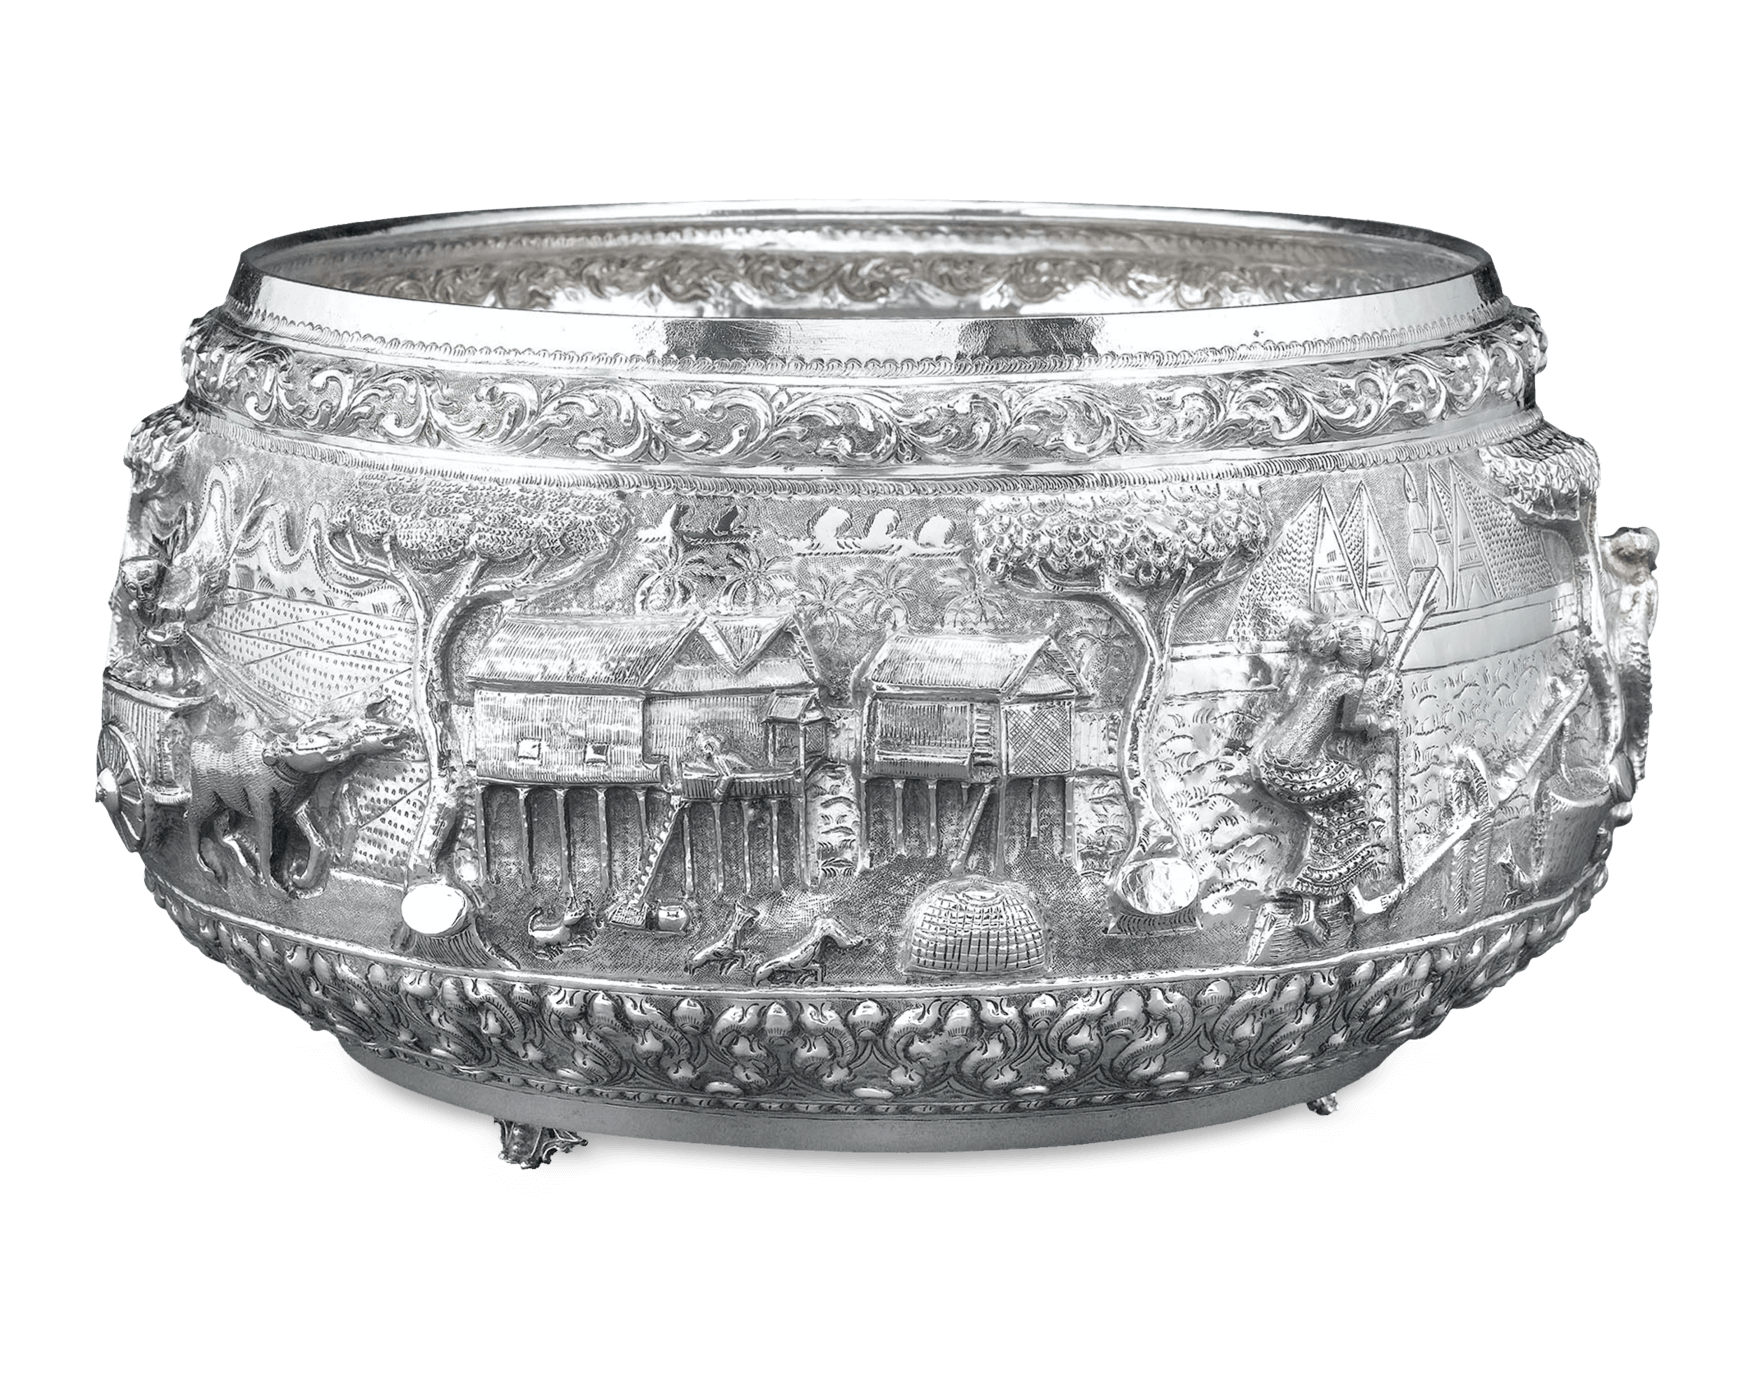 Transparent bowl silver. Antique asian burmese